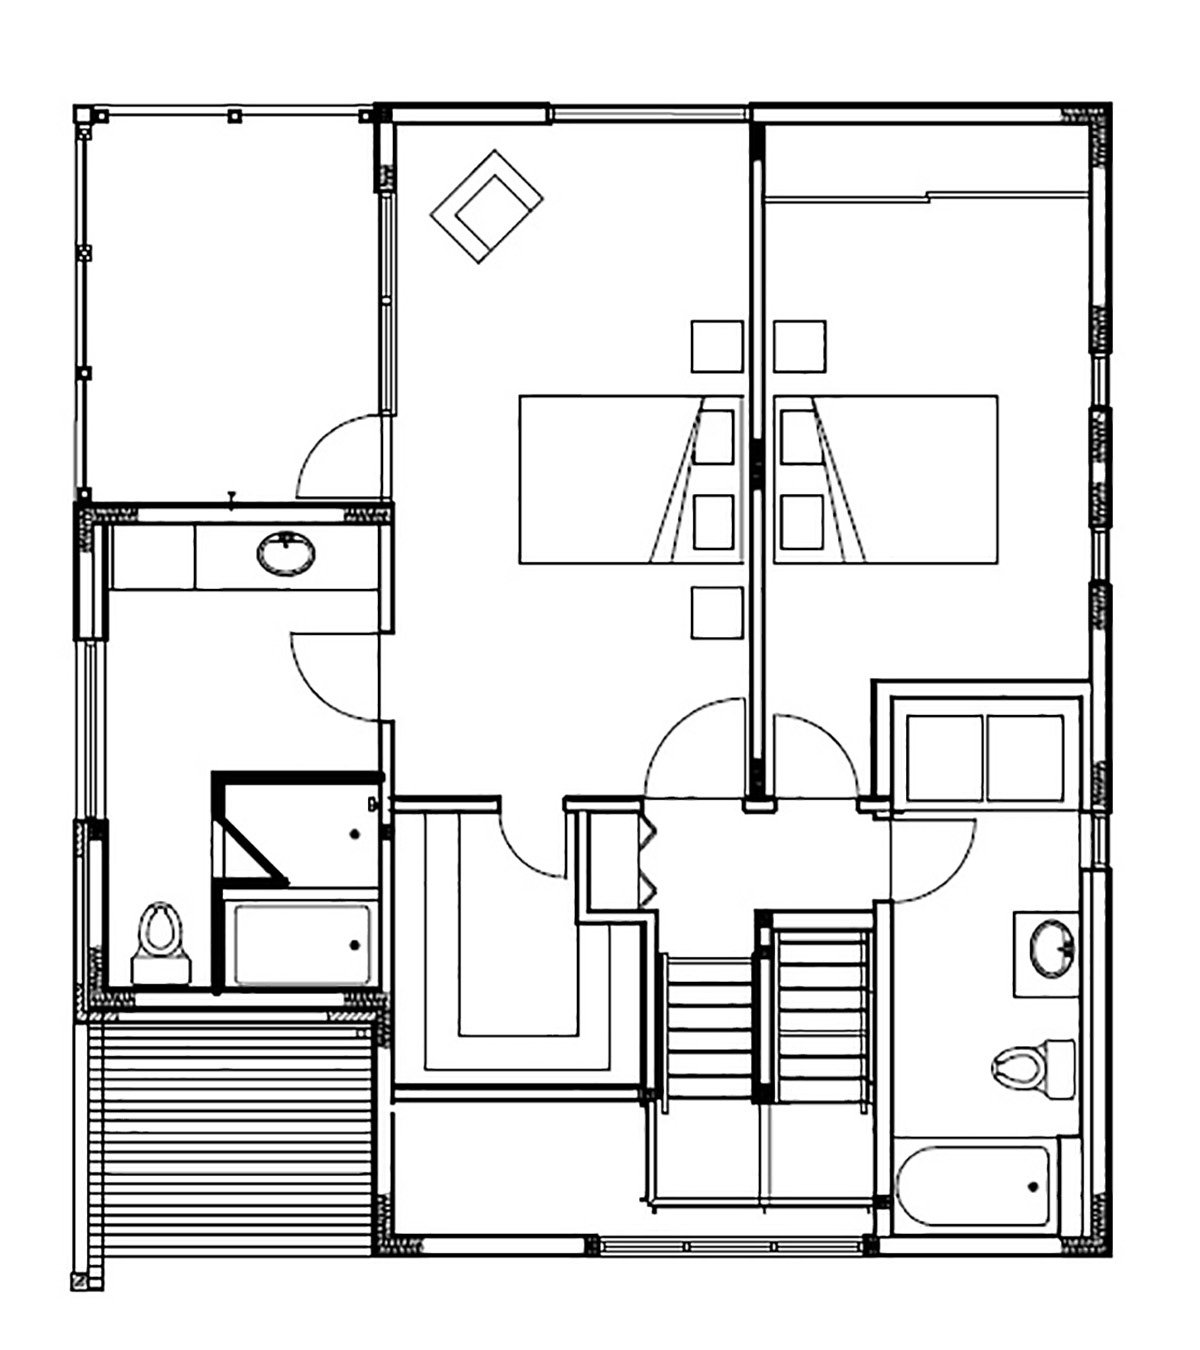 Second Floor - Project Plans